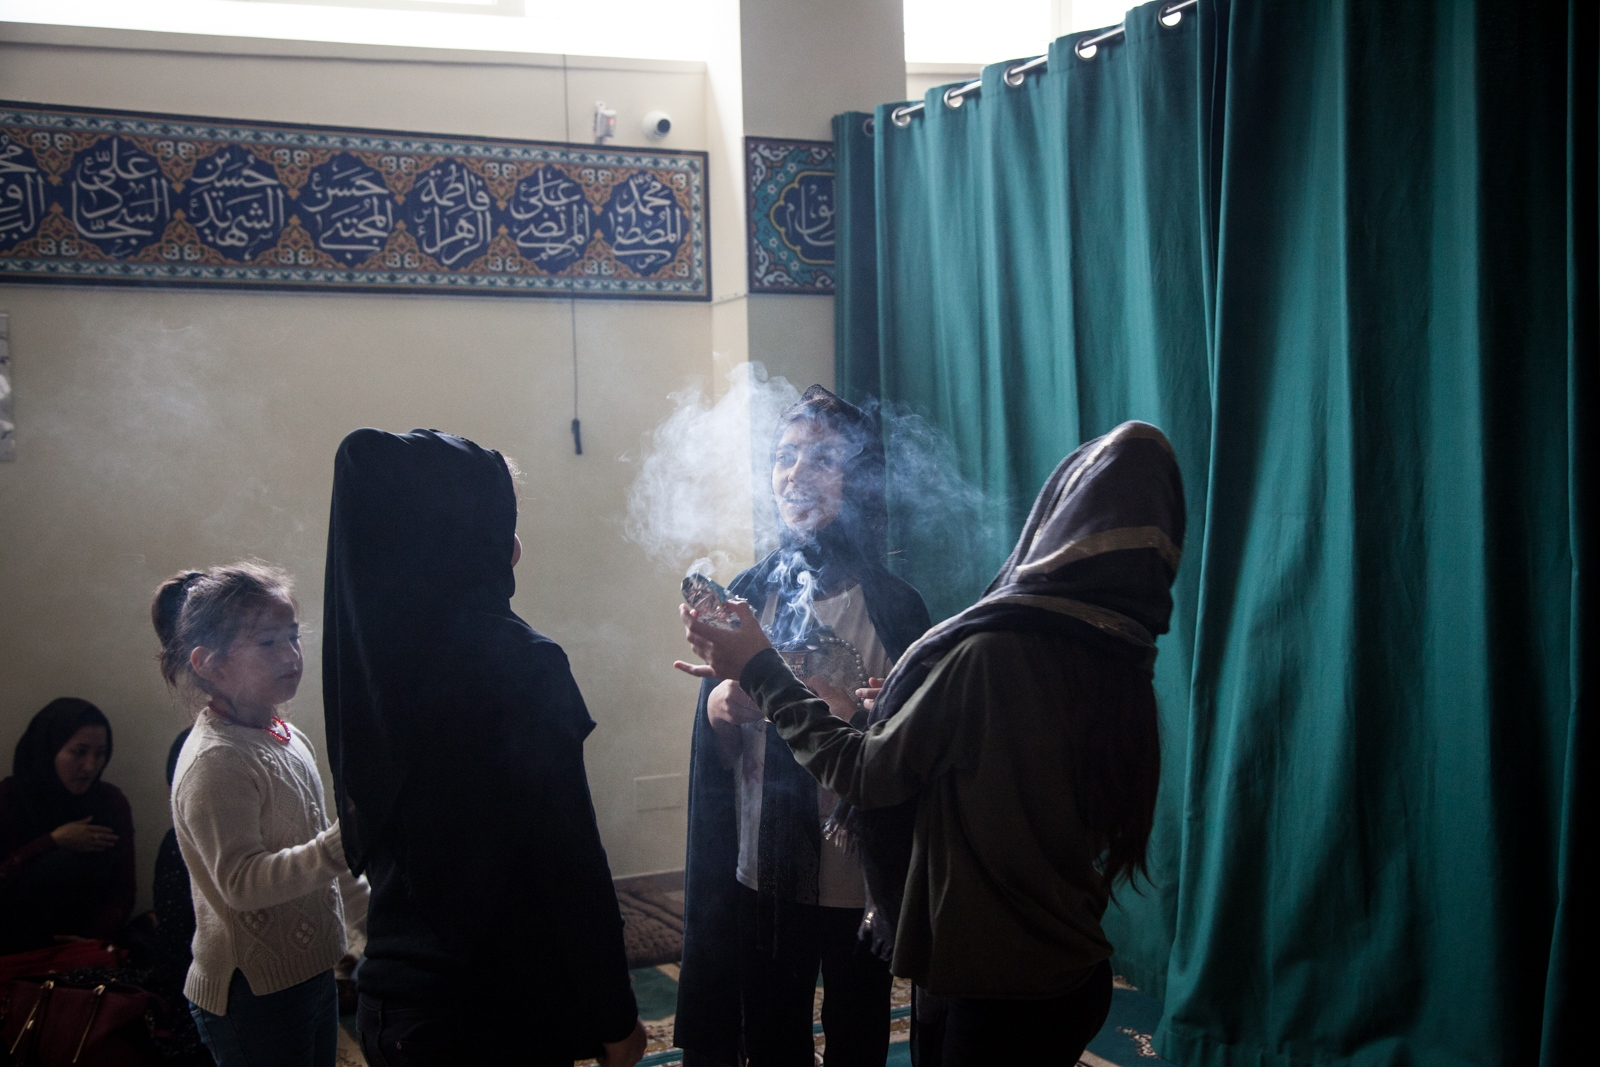 Oct, 1 - 2017 - Girls play with incense during the celebration for the day of Ashura at the Islamic Centre Imama Mahdi, in the southern area of Rome. The centre is the only Shia mosque in Rome.